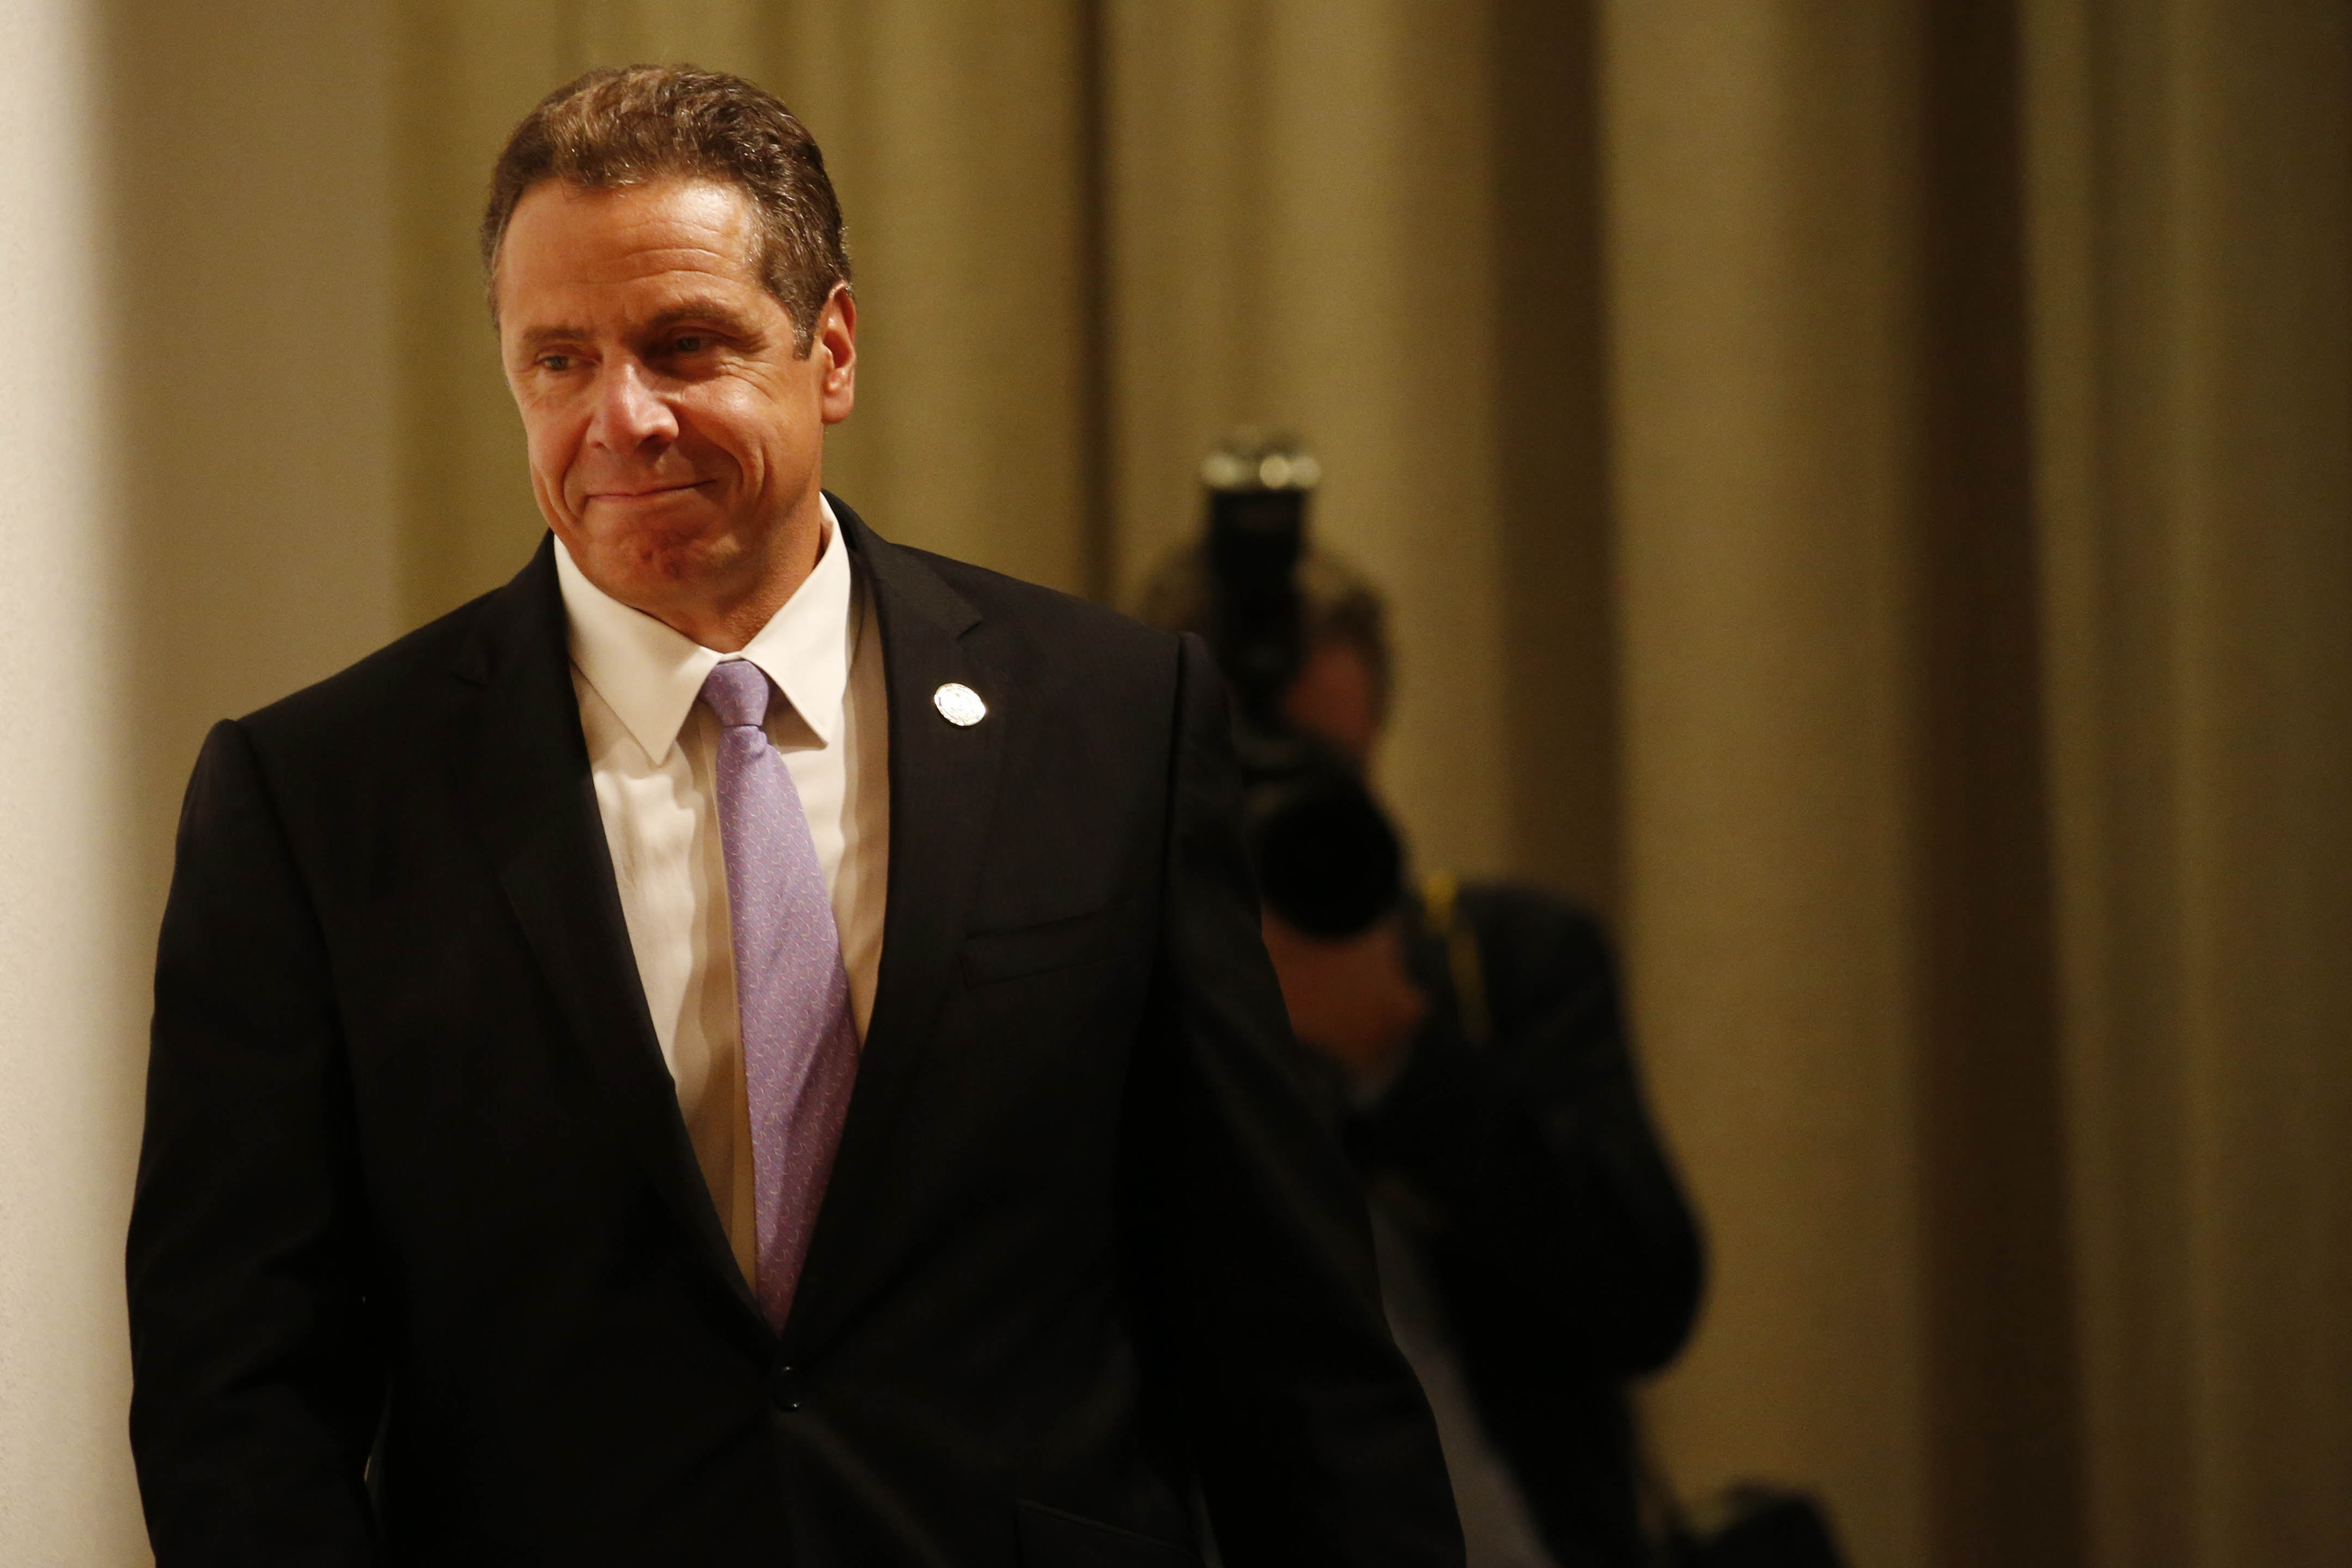 Gov. Andrew Cuomo takes the stage to speak at the Albright-Knox Art Gallery on Friday.